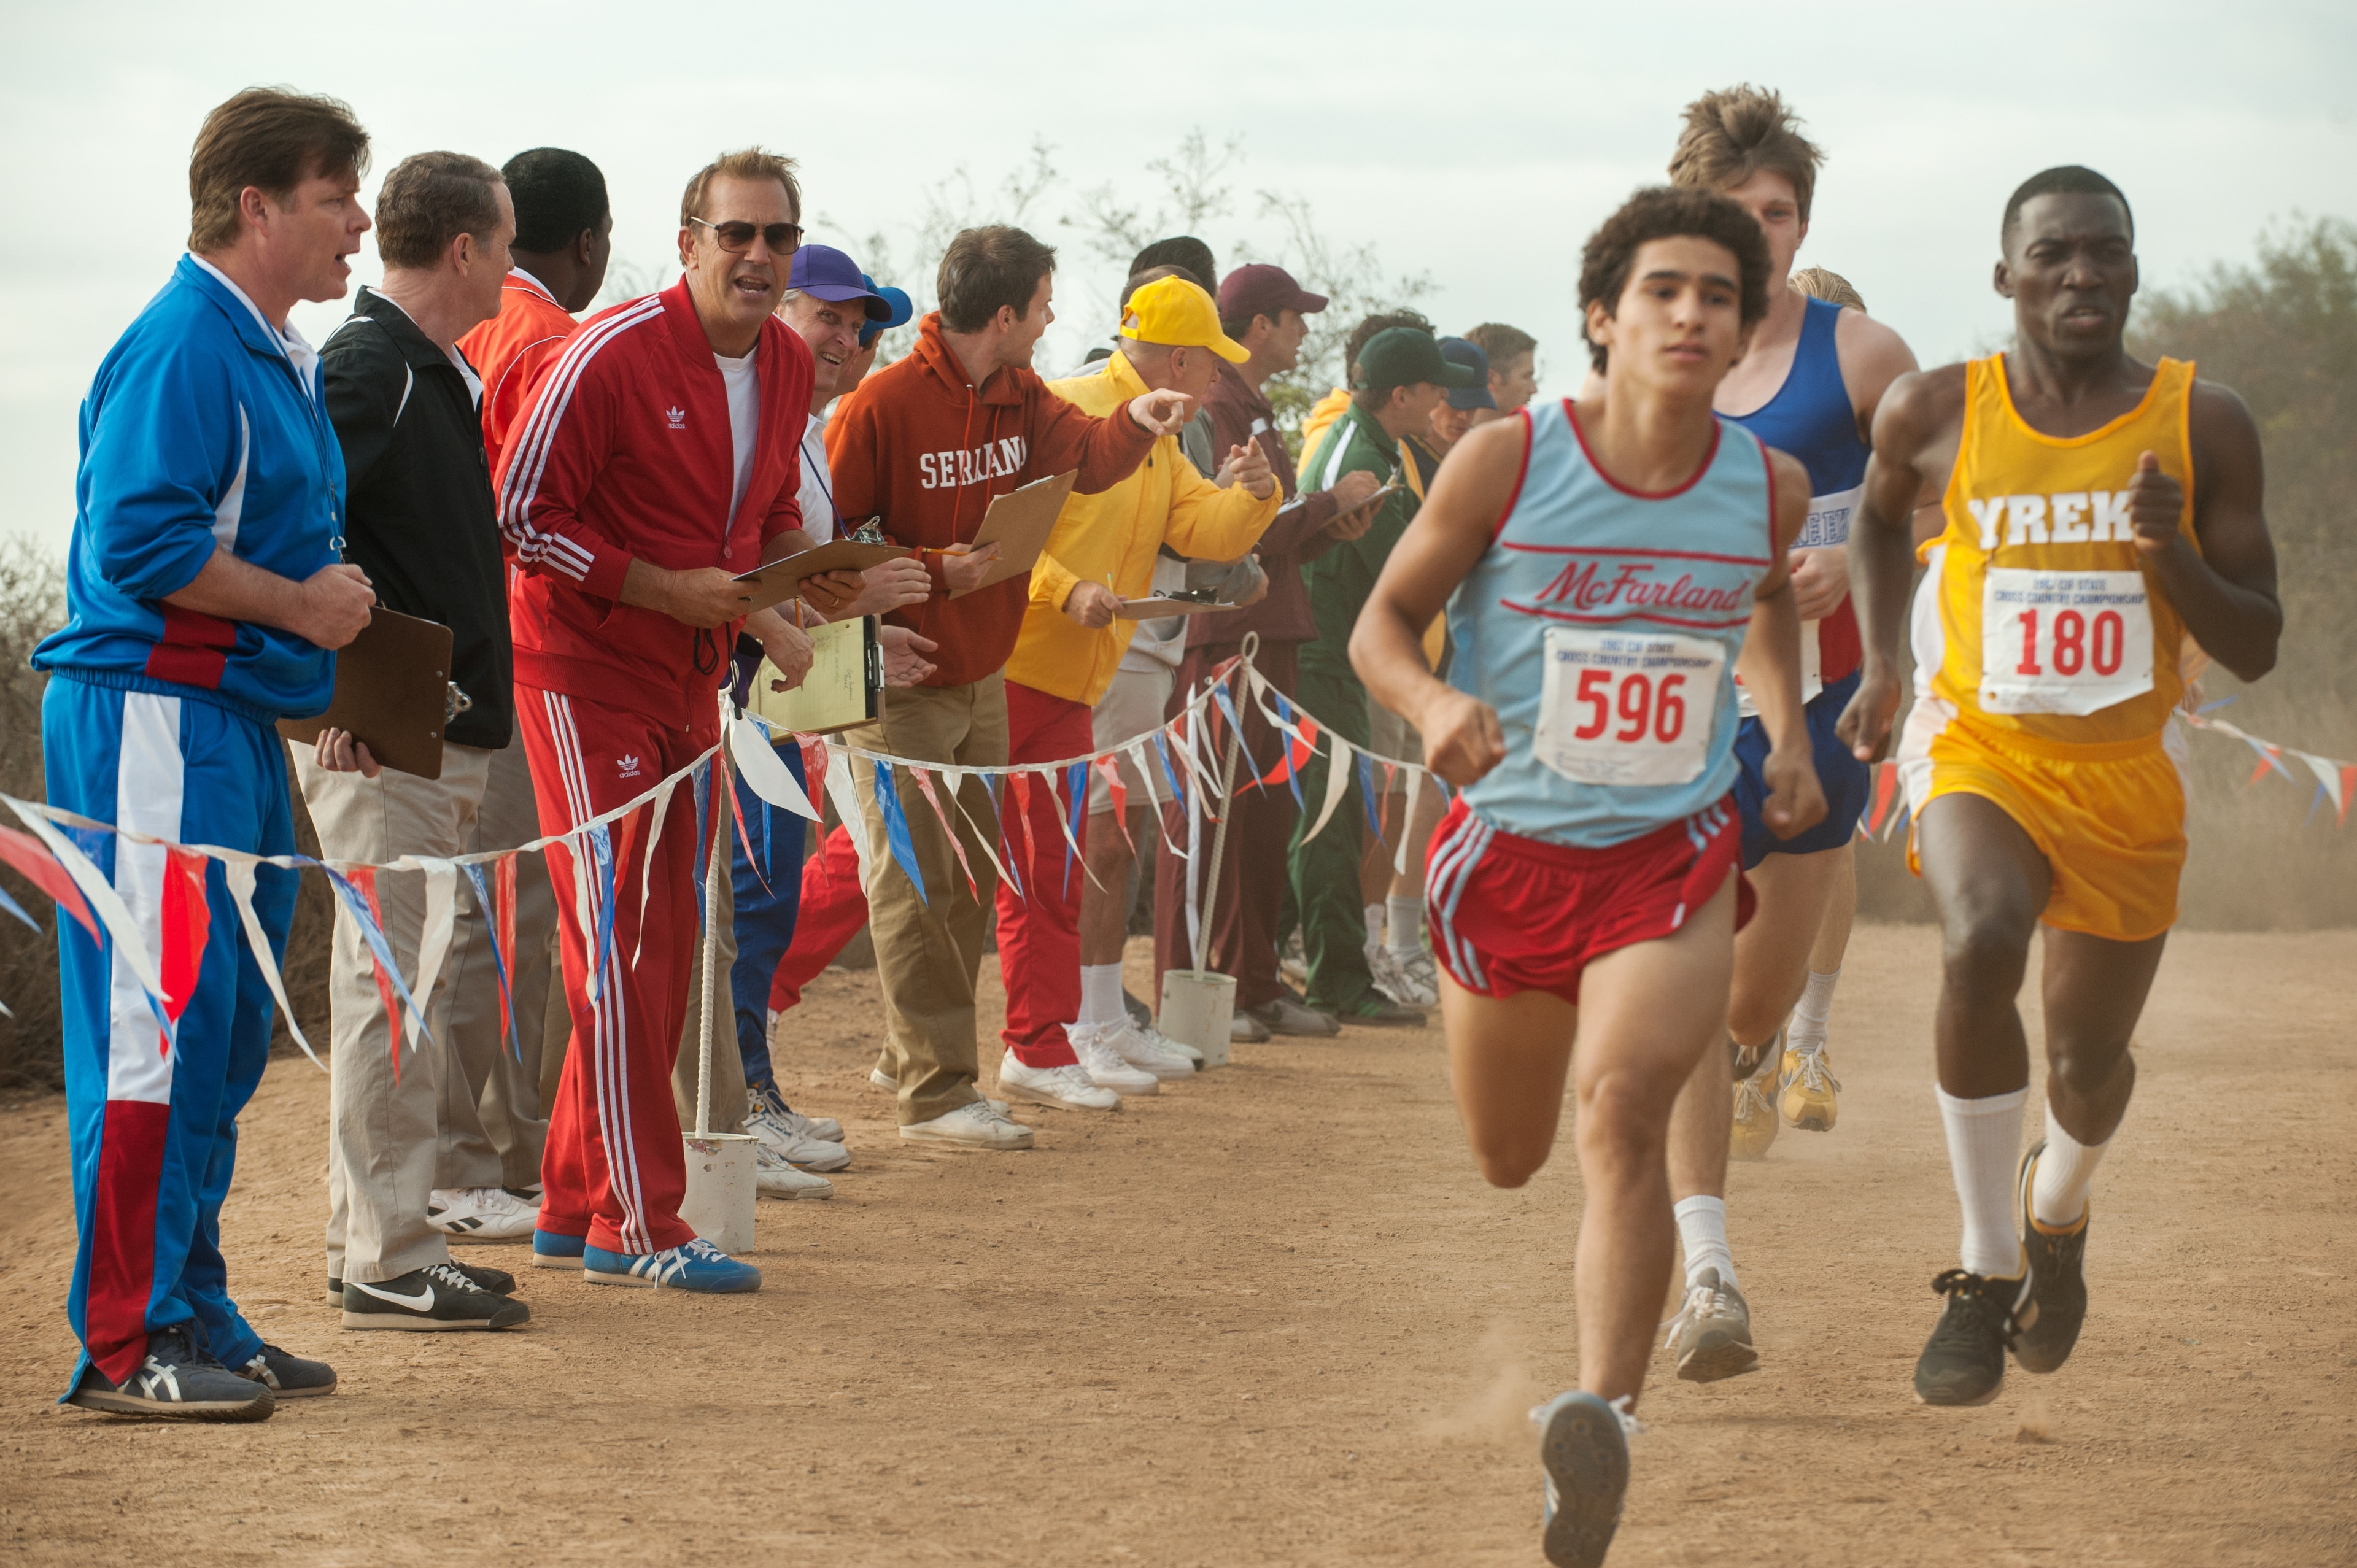 """Carlos Pratts as Thomas Valles running in a race in """"McFarland, USA"""""""